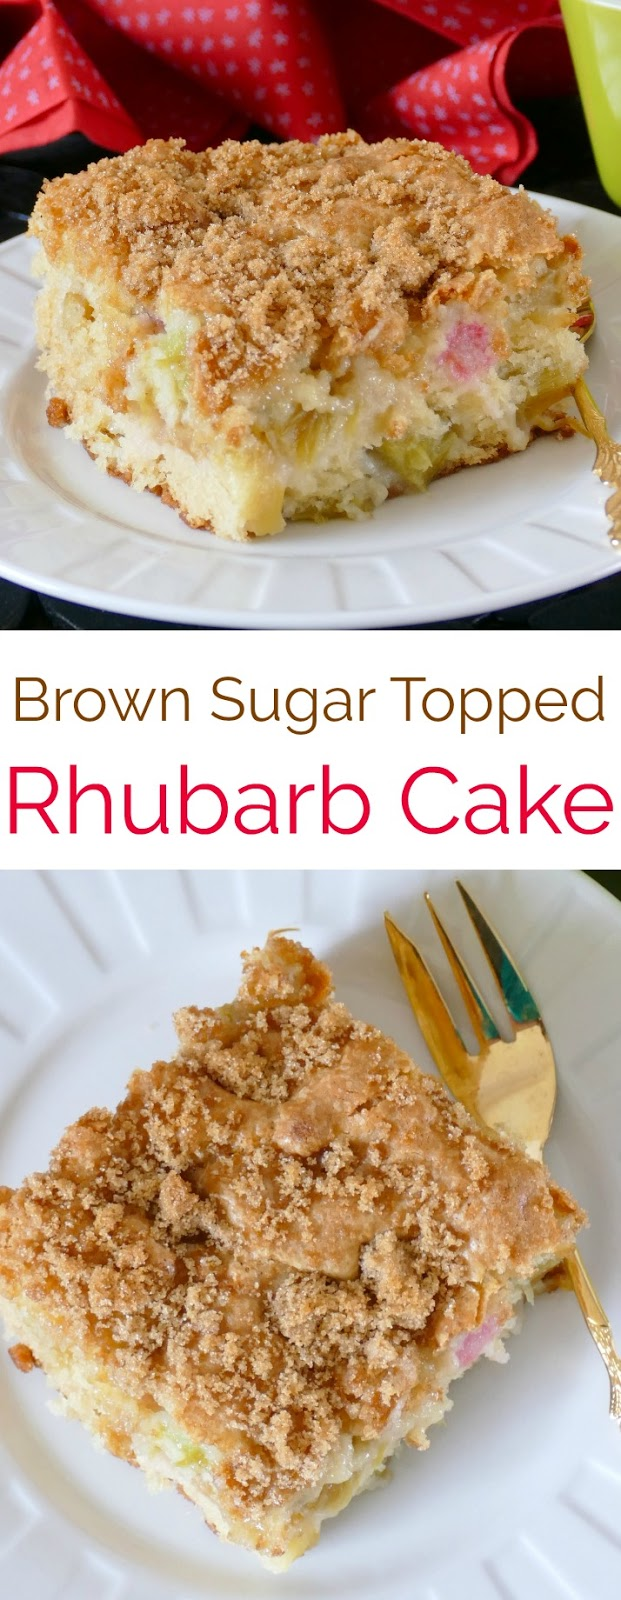 This spring and summer cake is absolutely perfect with the tart rhubarb and crunchy brown sugar topping! Great for BBQ's, picnics, brunch or parties!